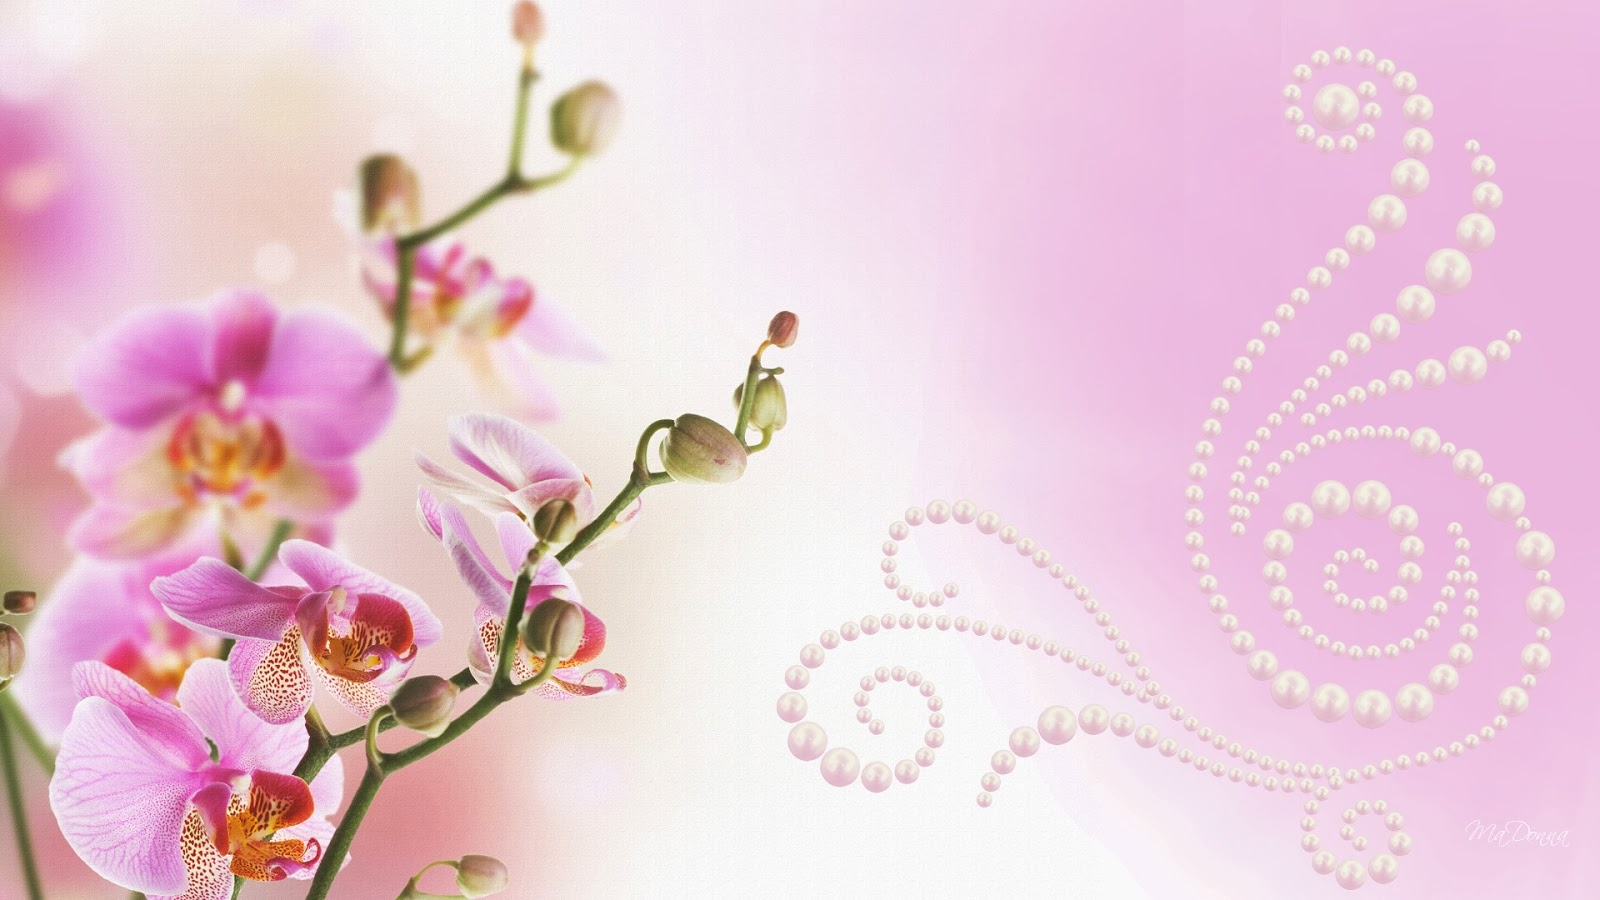 All new wallpaper Attractive pink orchids wallpaper 1600x900